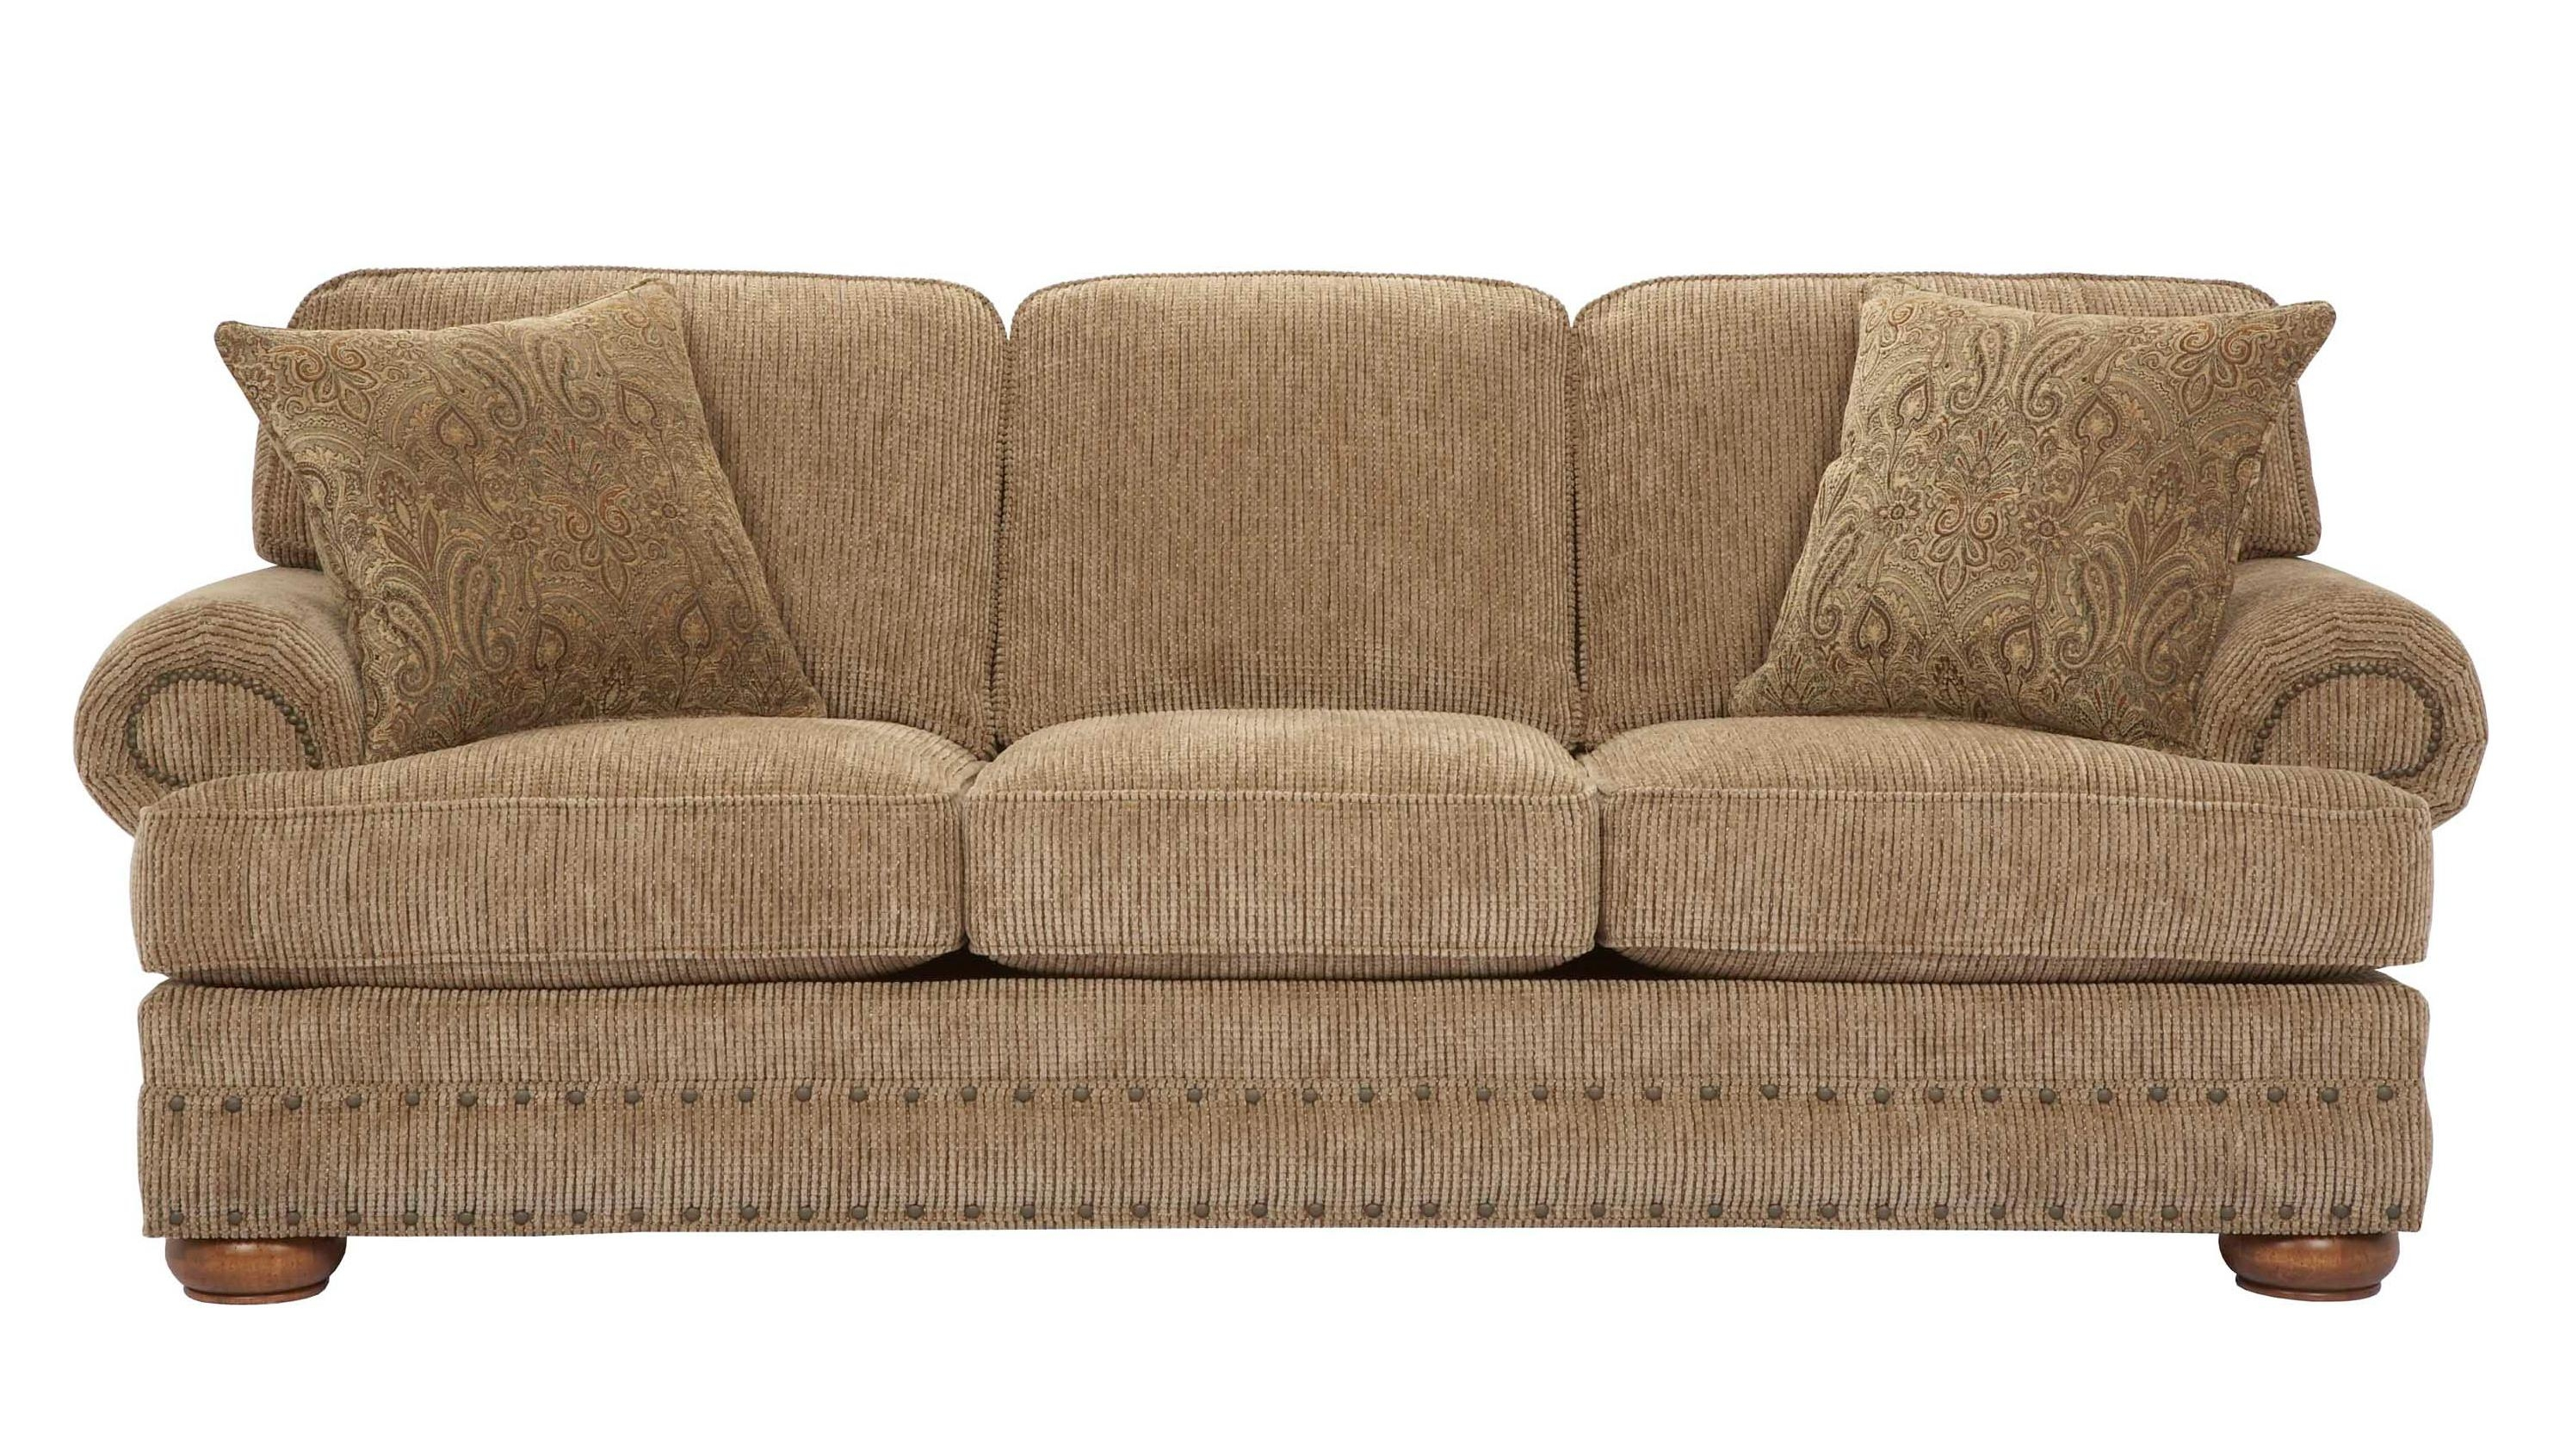 Broyhill Sofa 4178 3 Treatment Recliners Covers Fabric Samples pertaining to Broyhill Mckinney Sofas